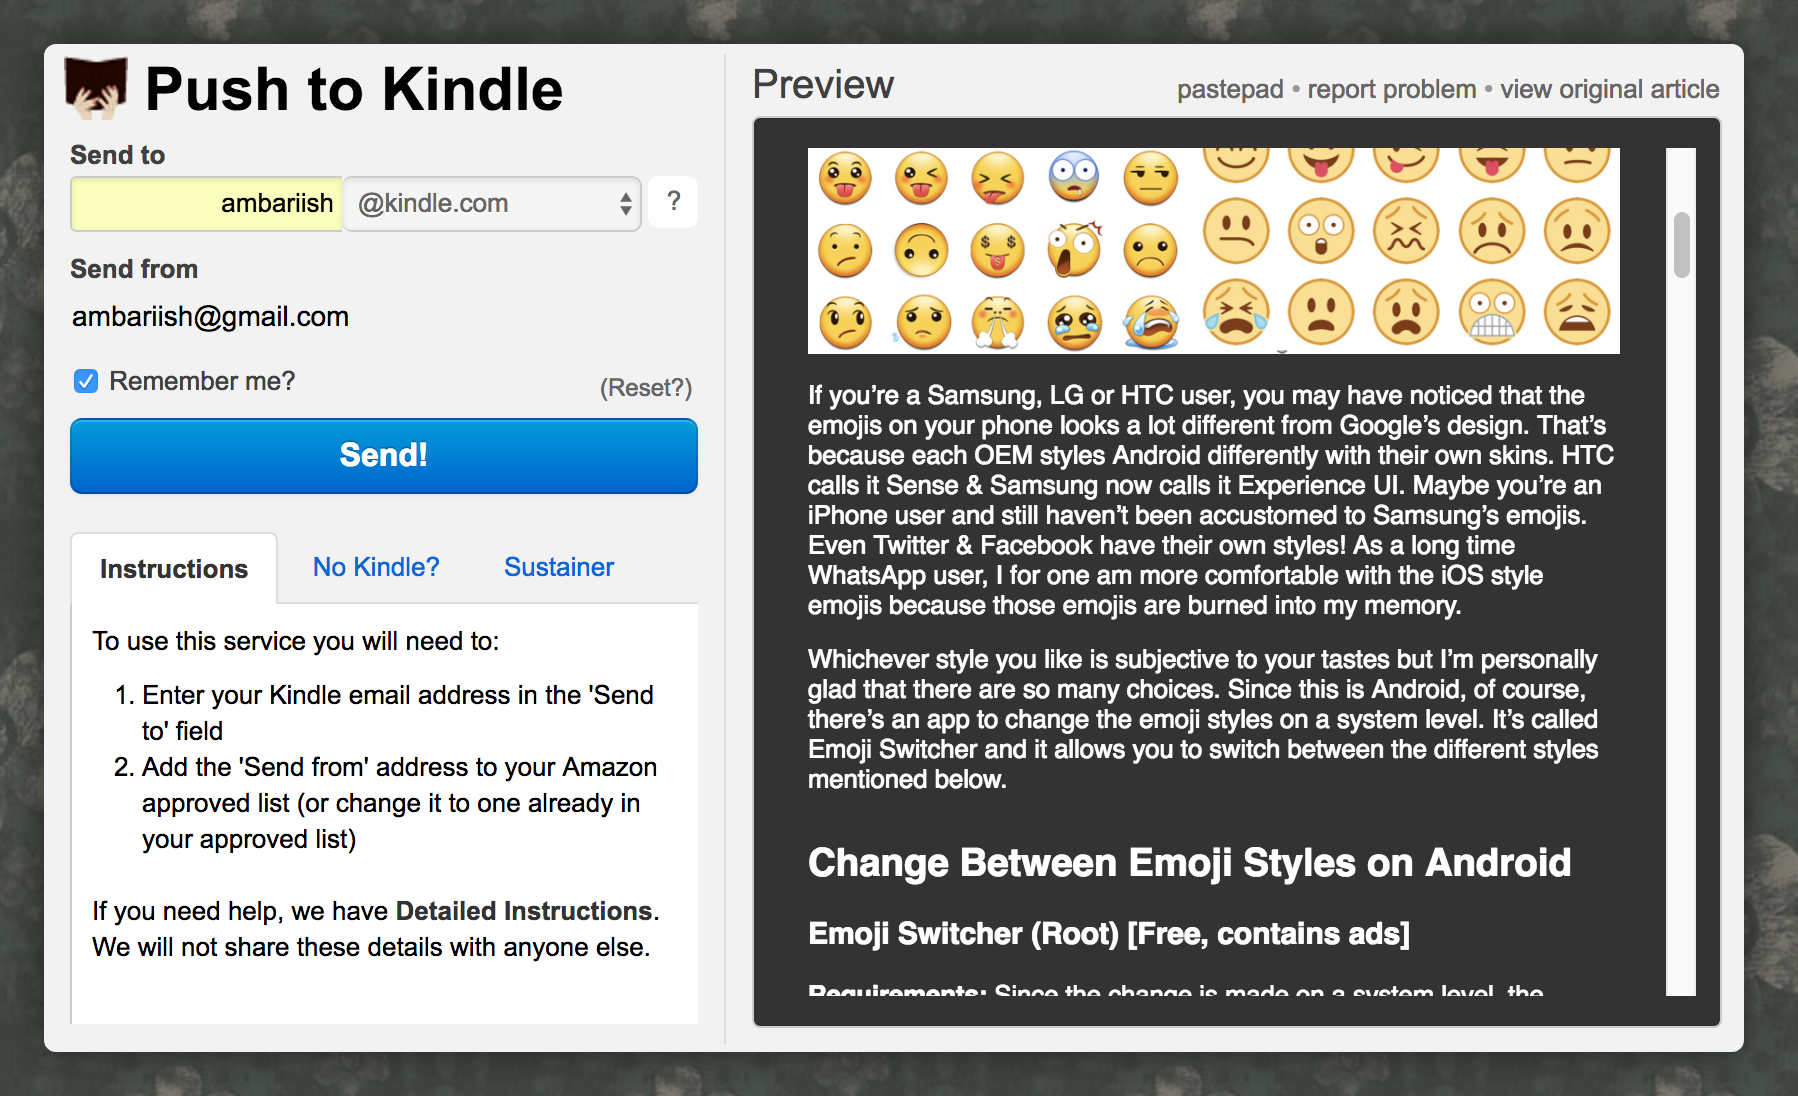 How to Send Articles & PDFs from Android or PC to Amazon Kindle